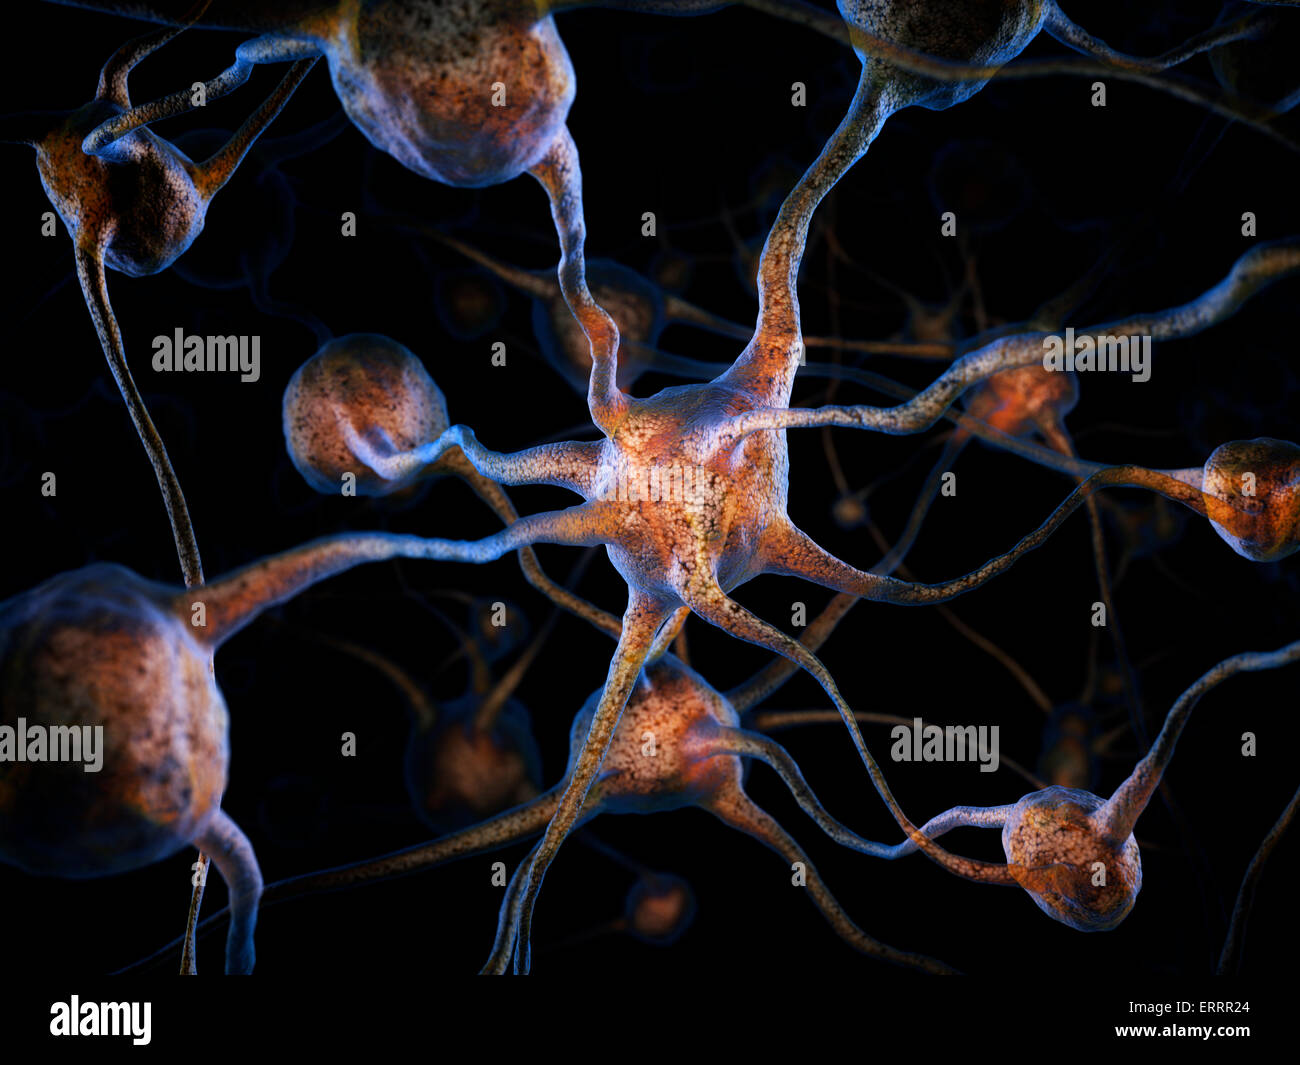 Network of neurons, Brain cells, scientific conceptual 3D illustration - Stock Image